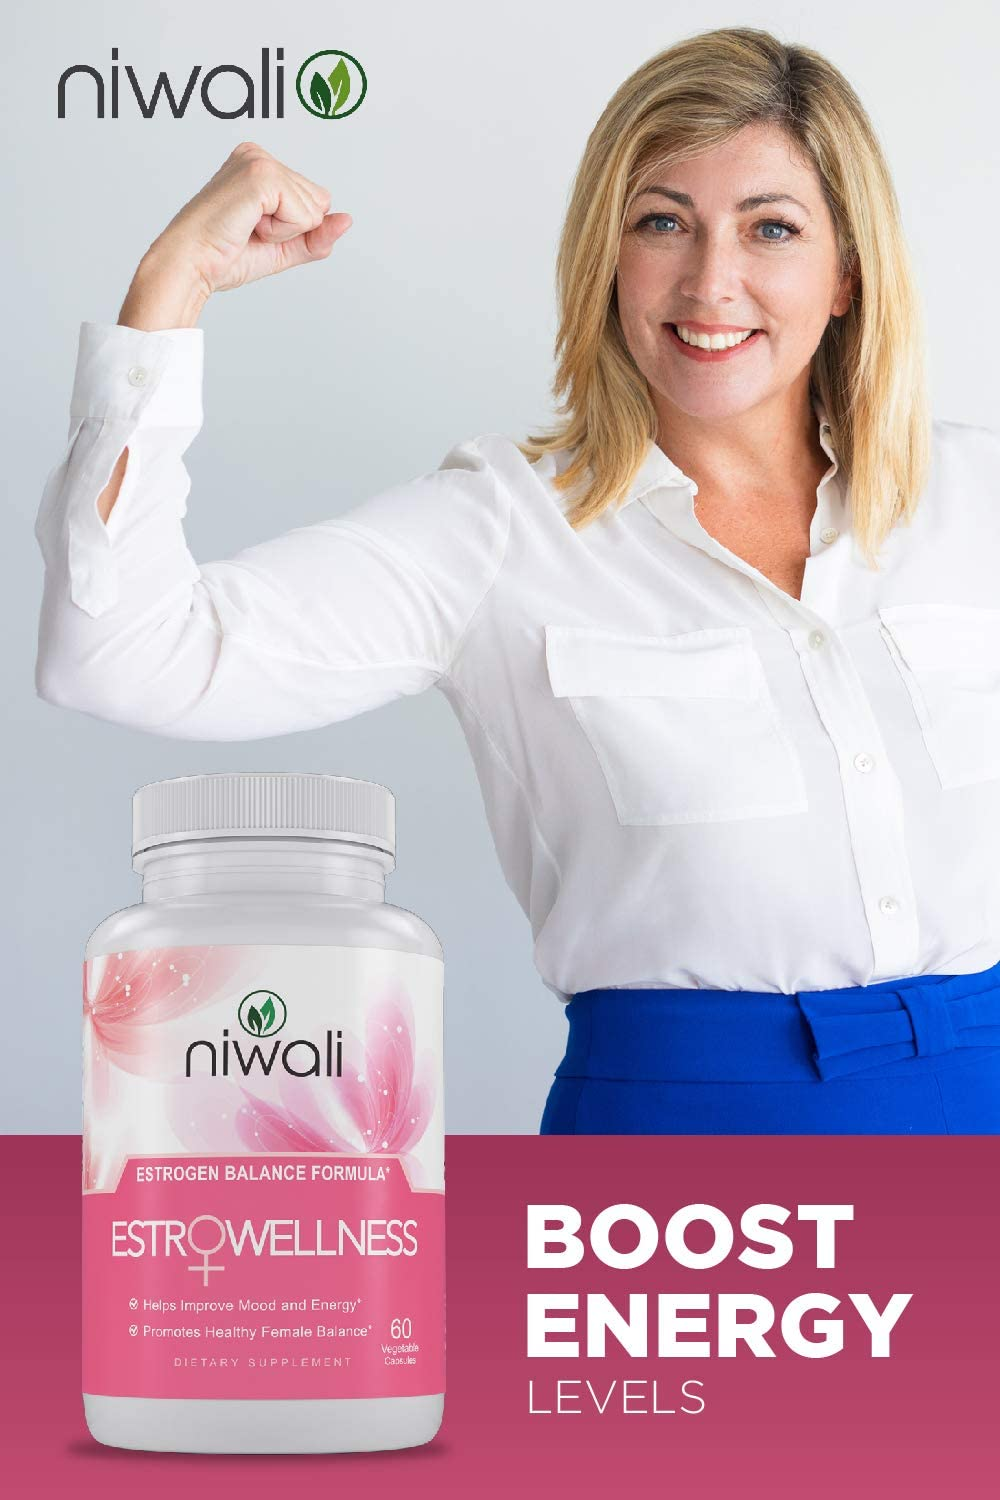 Niwali EstroWellness Pills for Hormonal Balance & Menopause Relief for Women